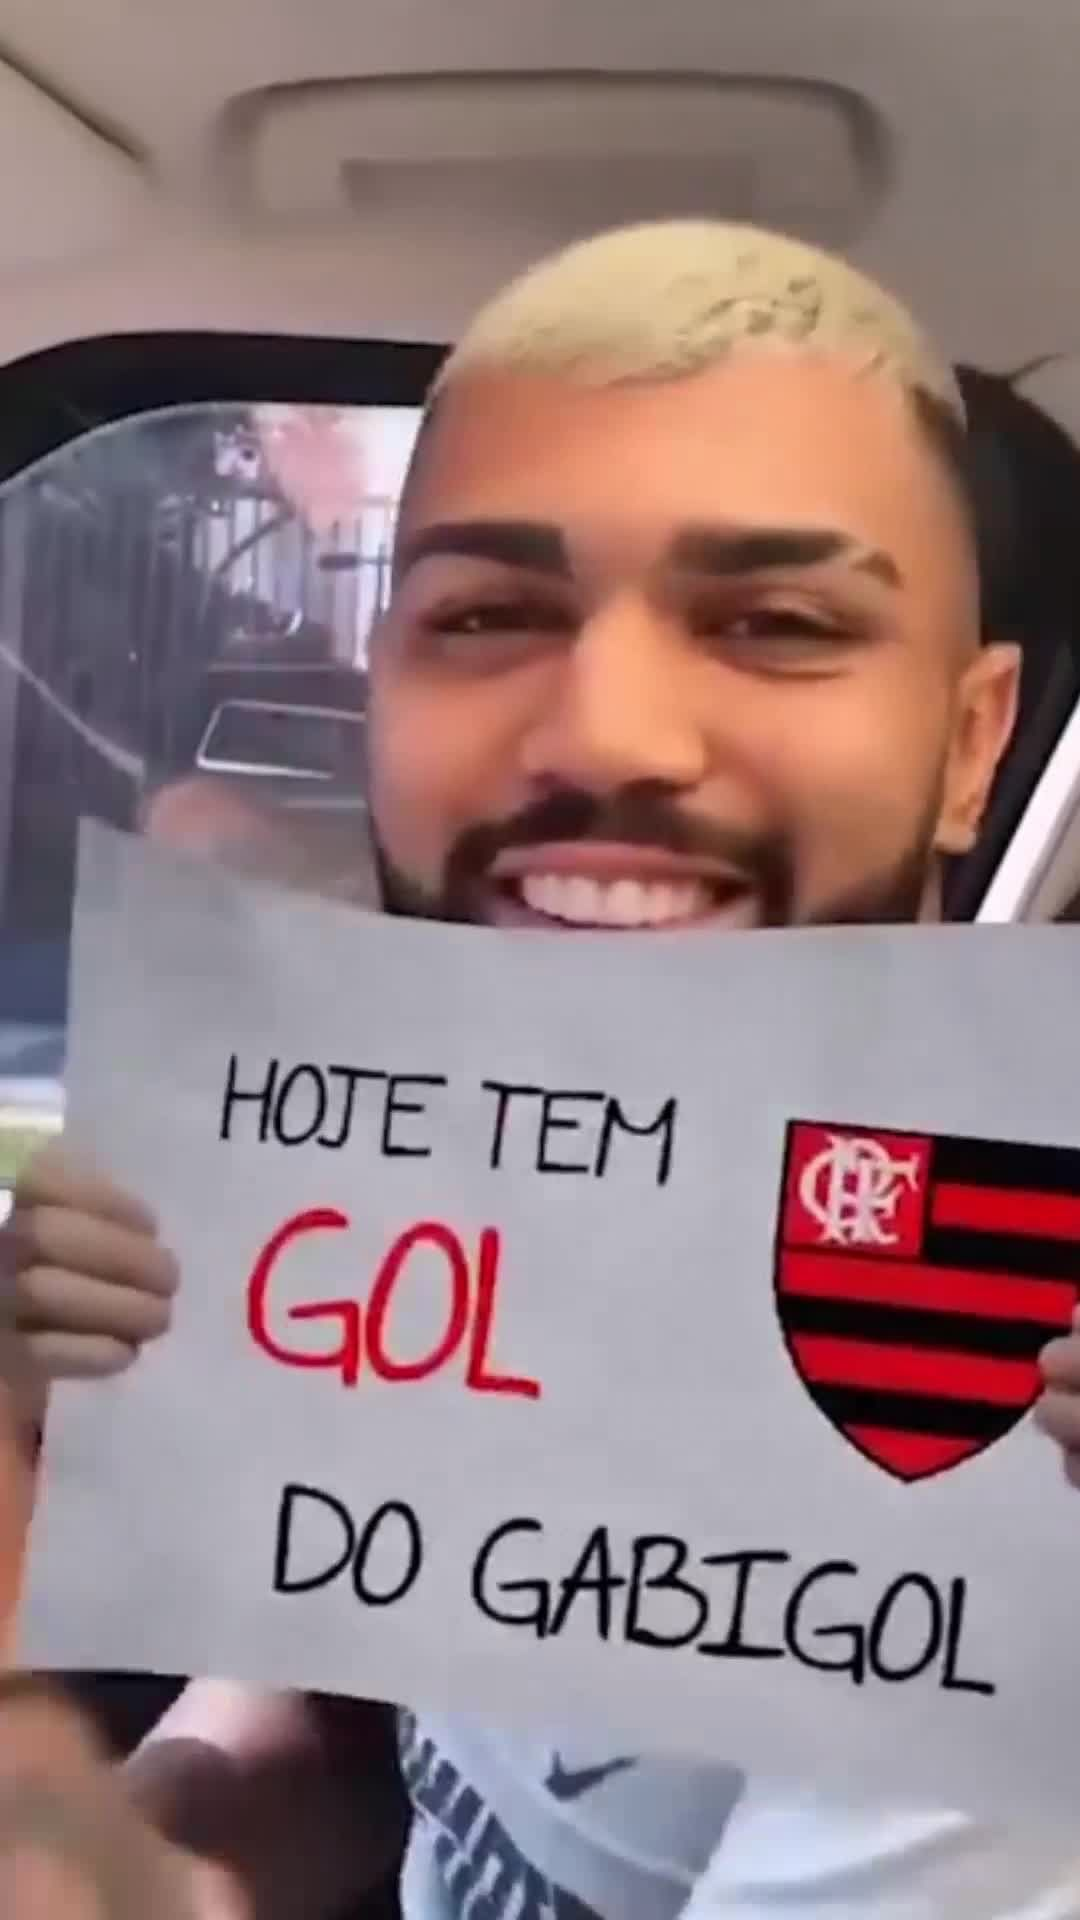 Instagram filter Gol do GabiGol